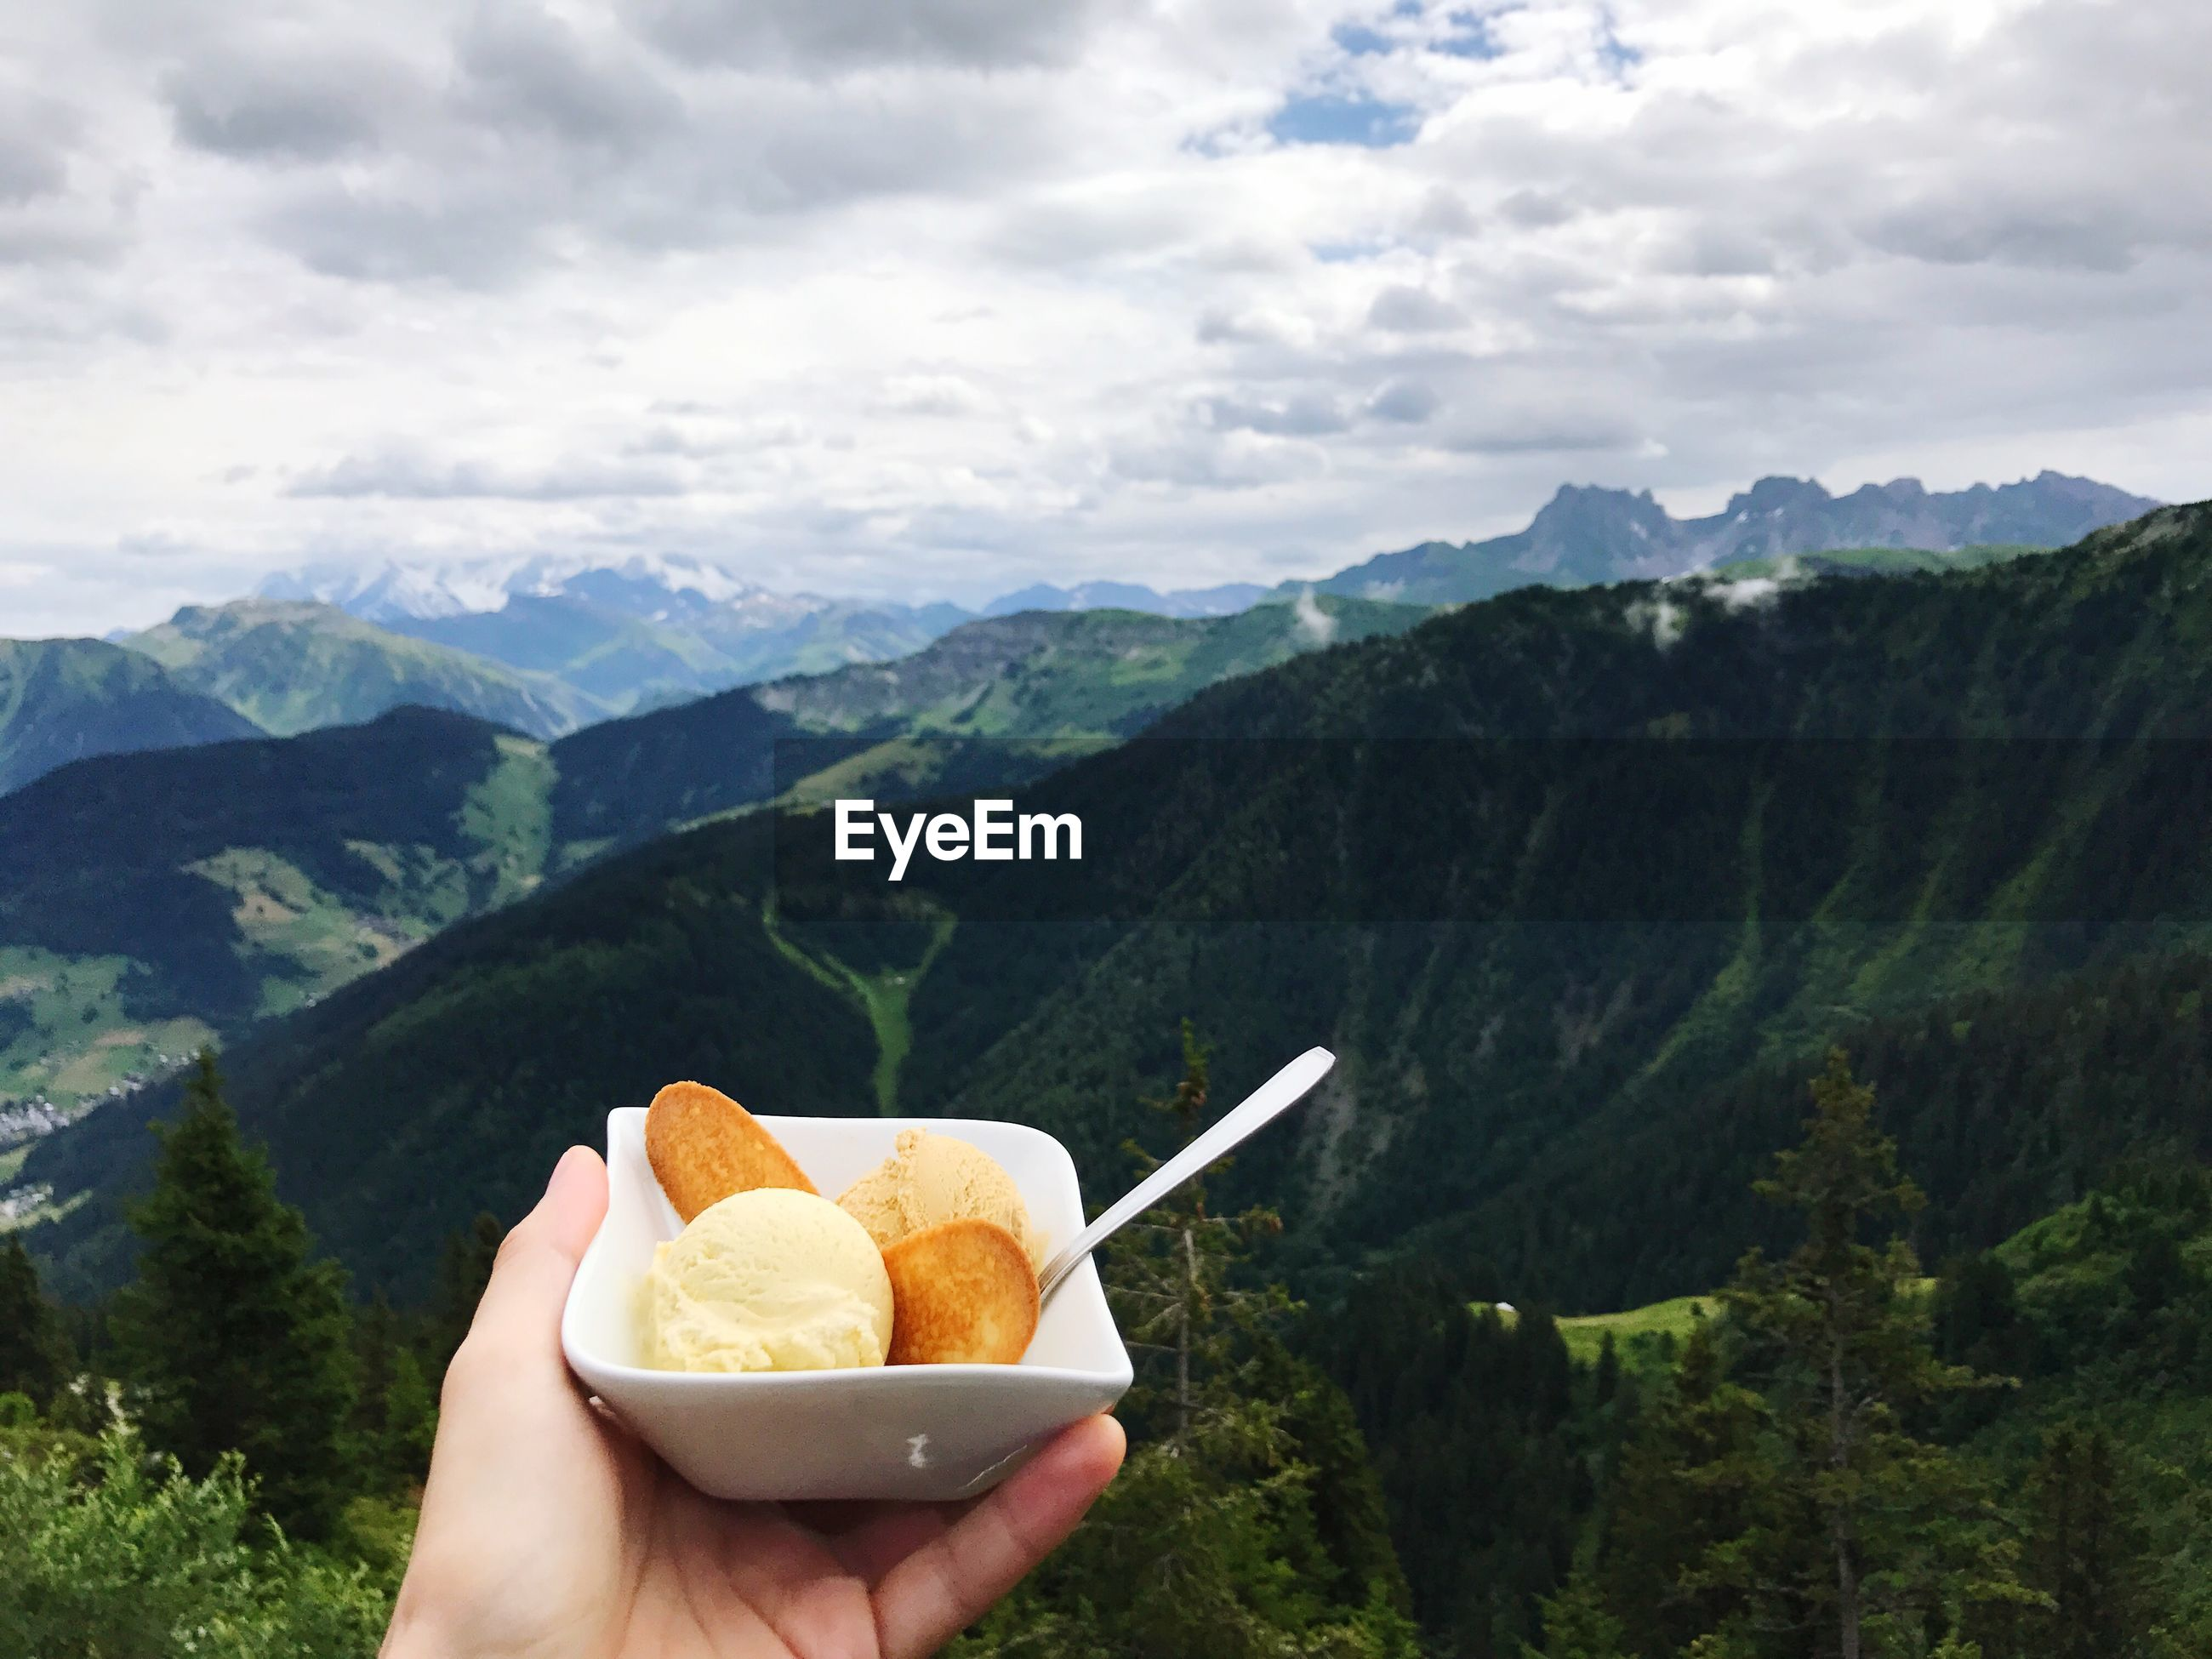 Cropped hand of woman holding ice cream on mountain against cloudy sky